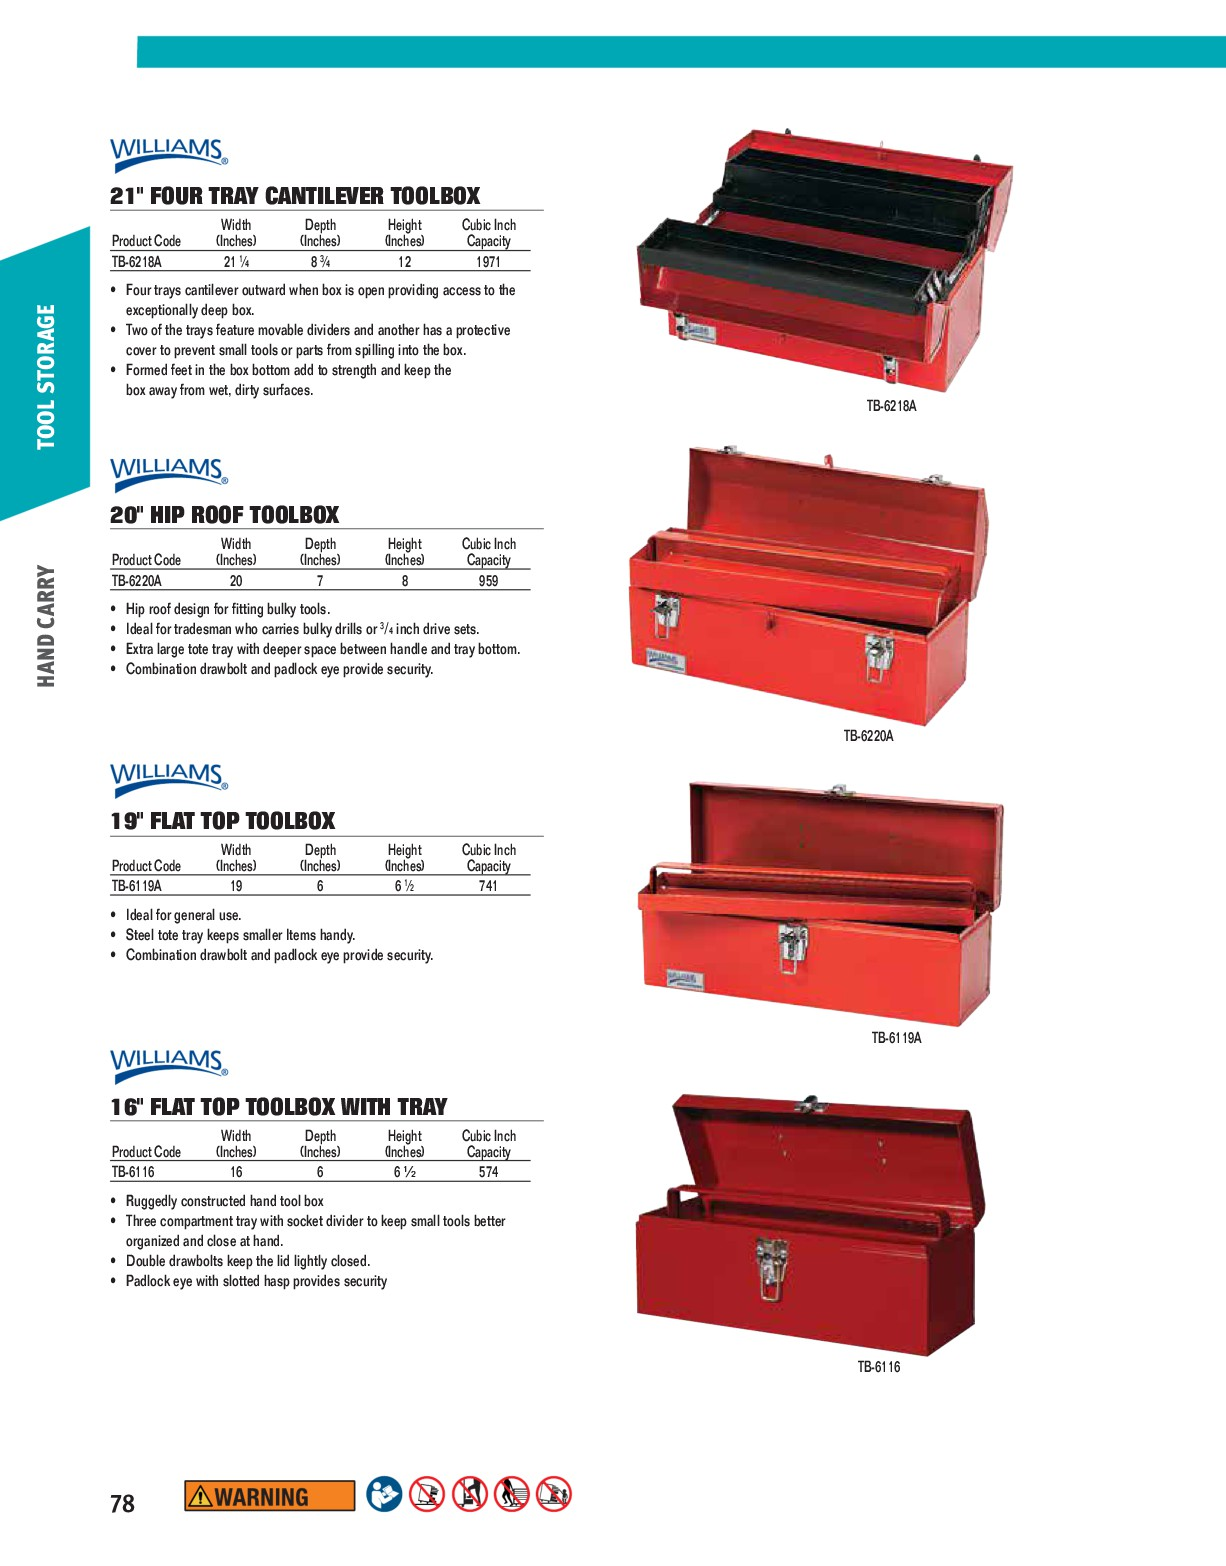 Williams TB-6220A Hip Roof Toolbox 20